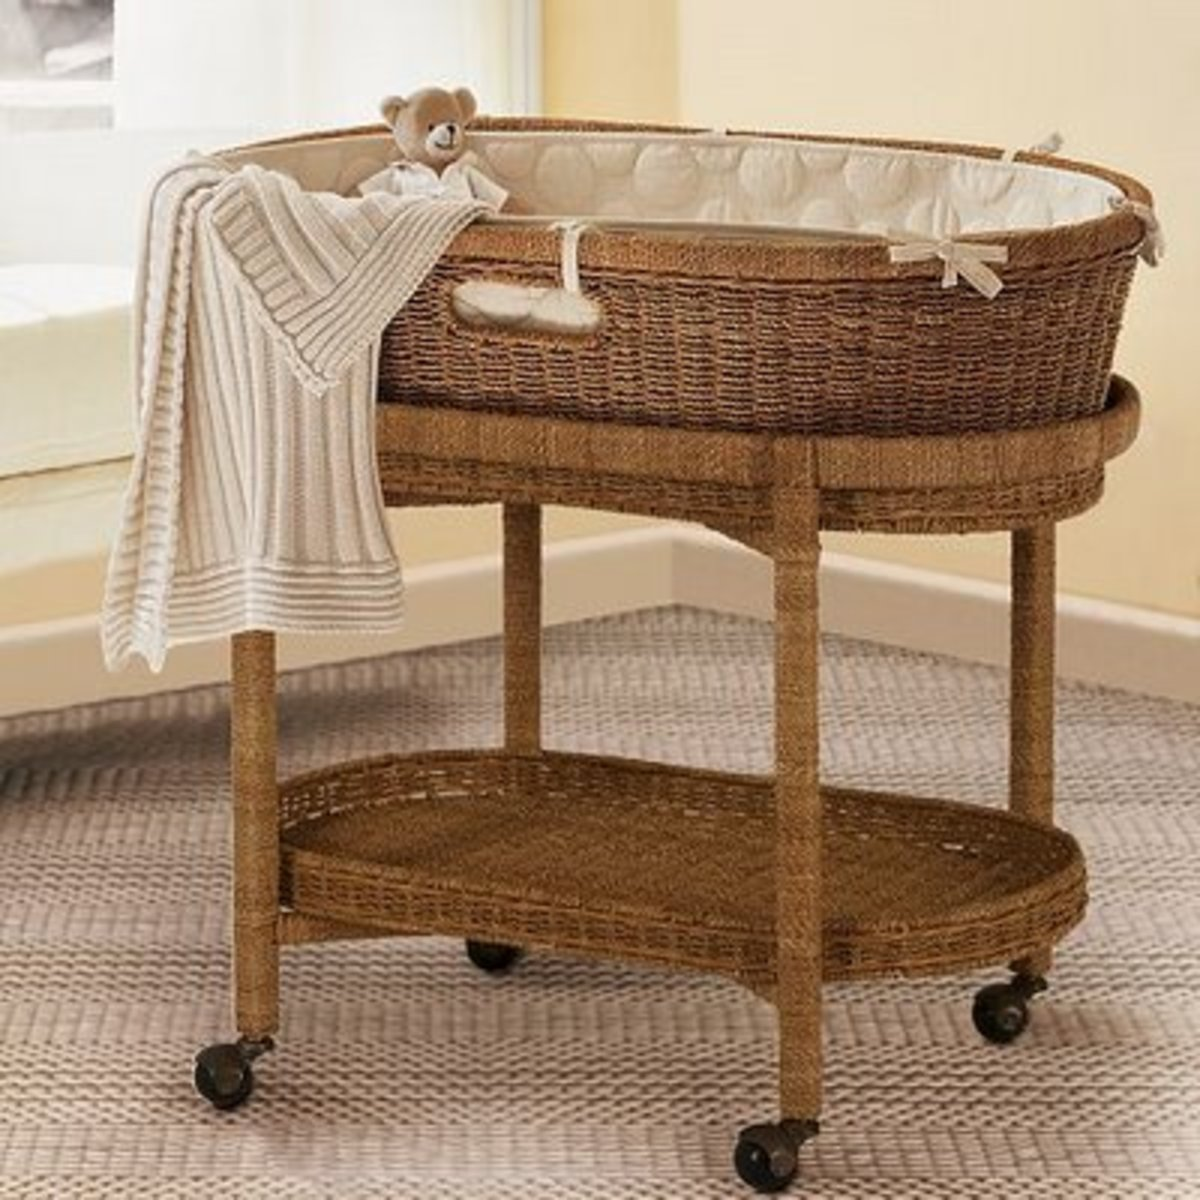 pottery barn kids bassinet frame with removed hood.  wheels lock.  plenty of storage below.